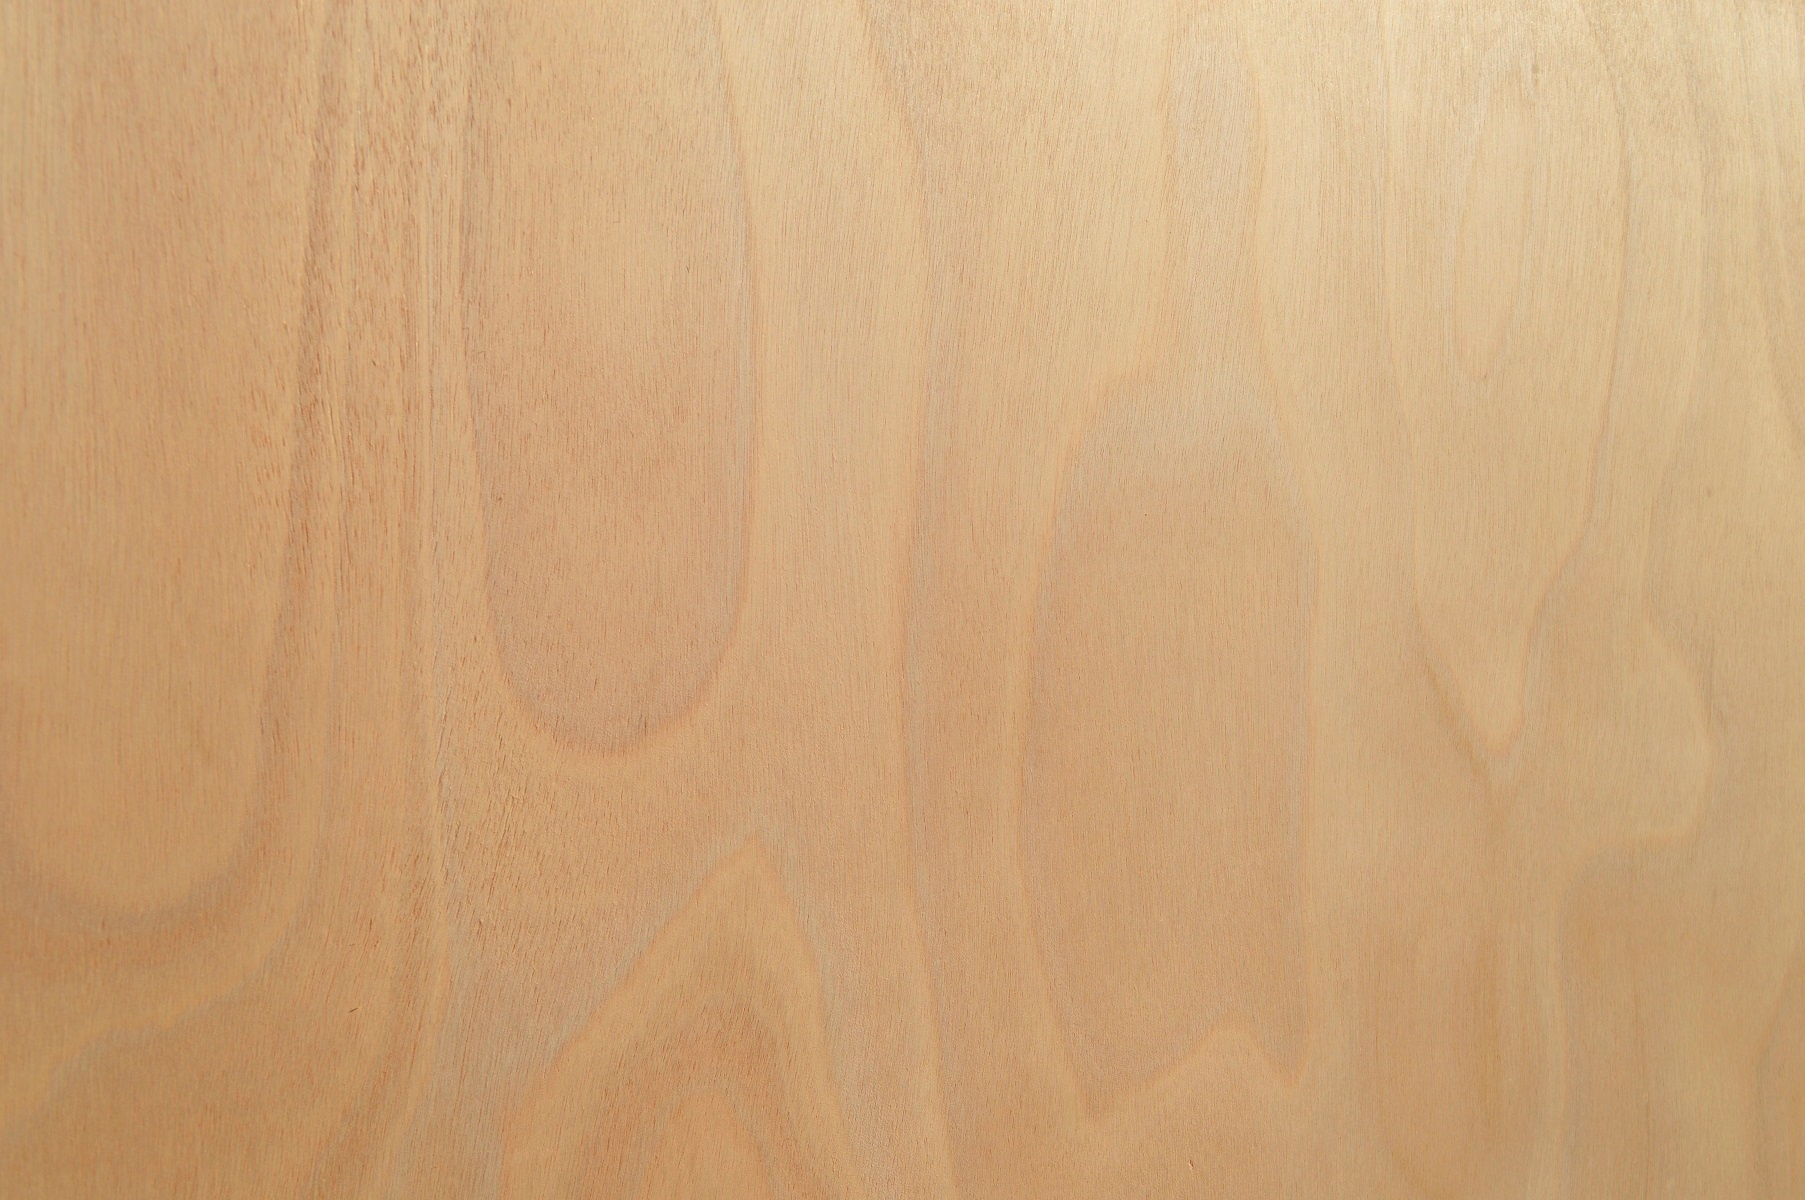 marine-grade-plywood-grain